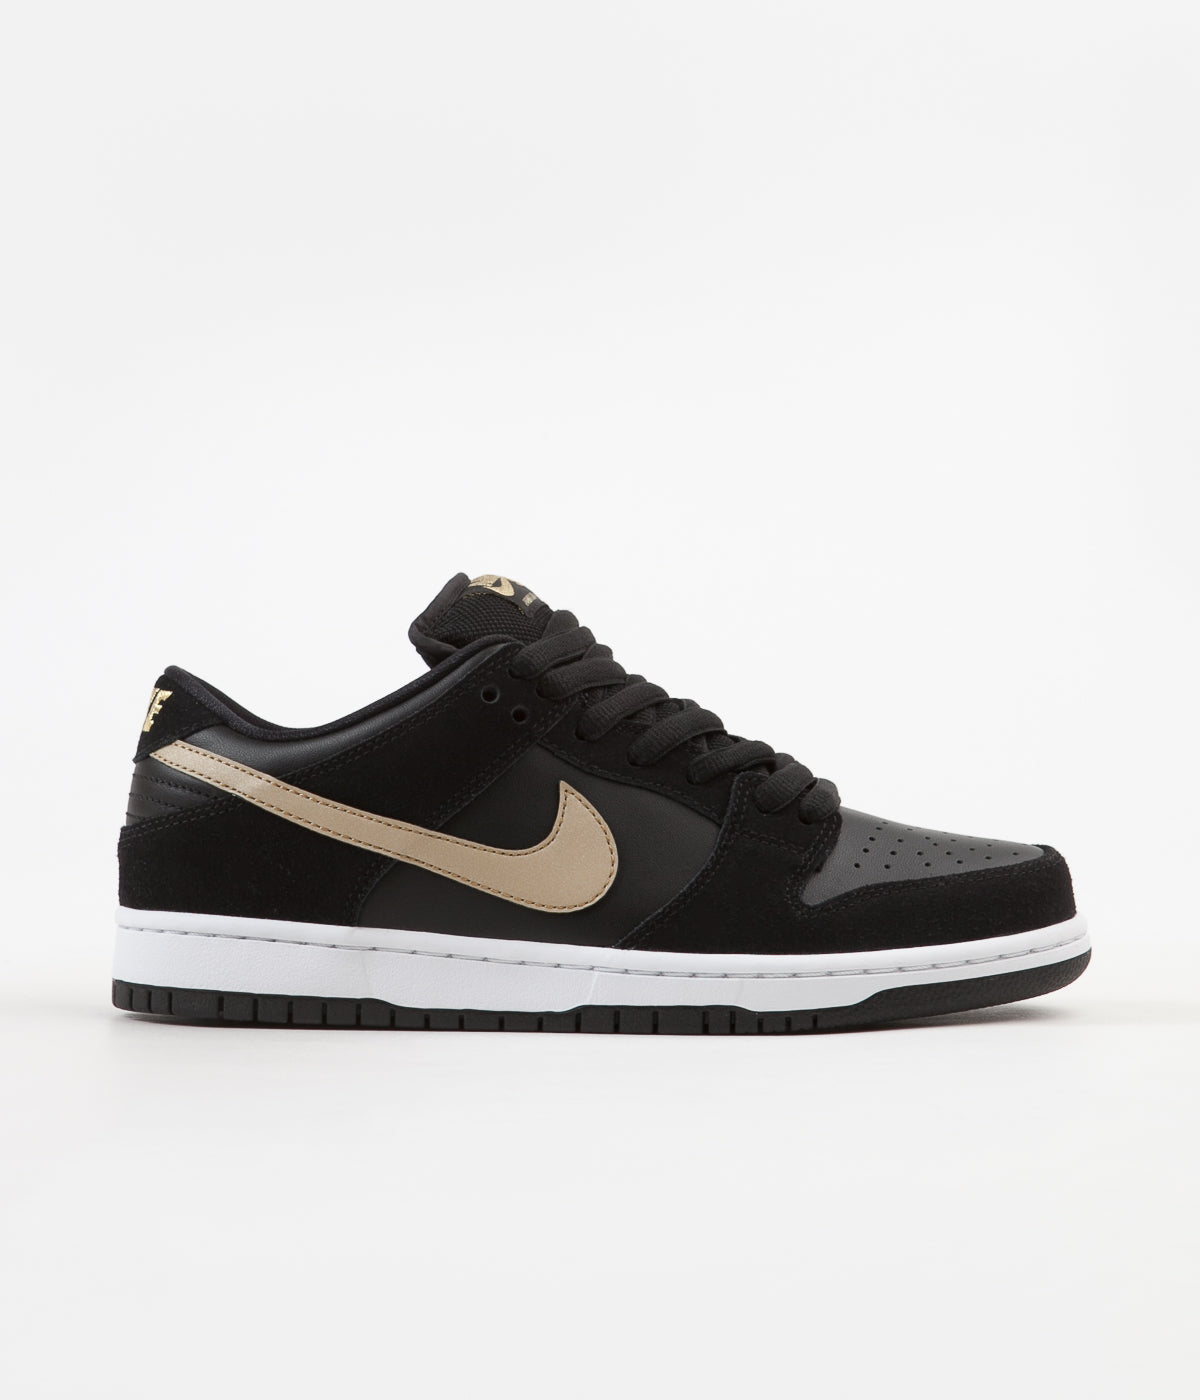 check out 54629 ddb69 ... Nike SB Dunk Low Pro Shoes - Black   Metallic Gold - White ...